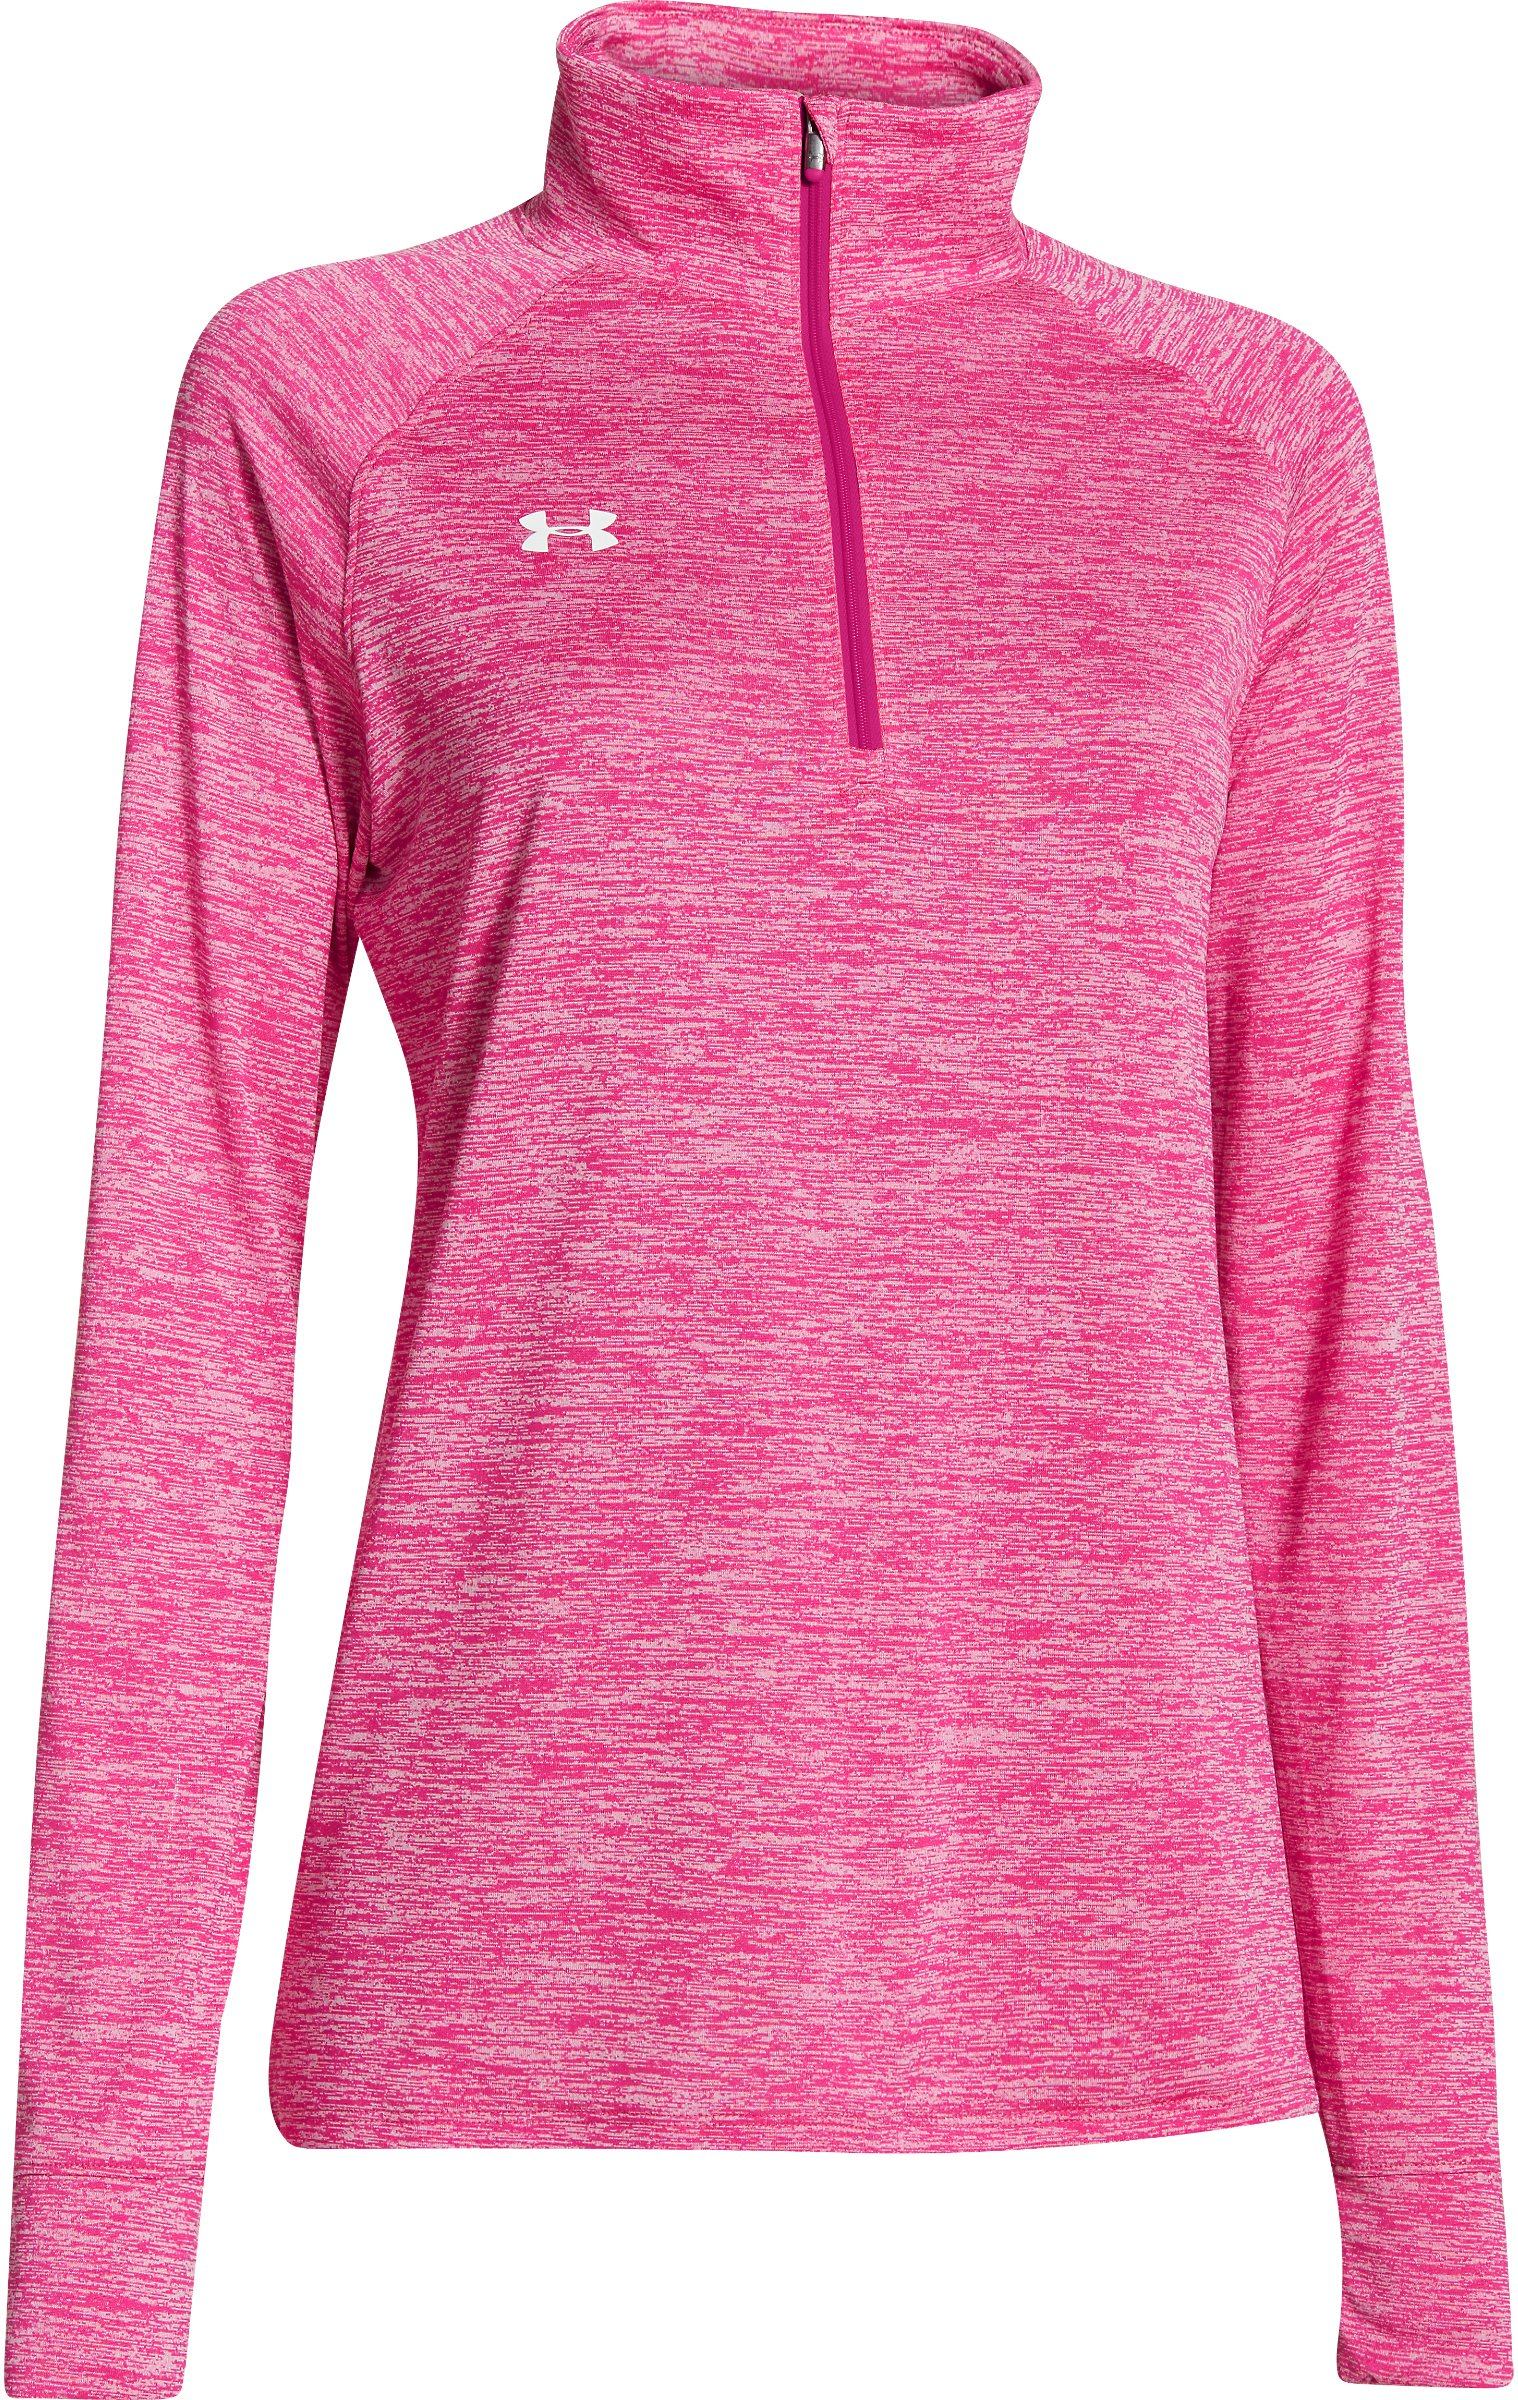 Under Armour UA Sideline Twisted Tech 1/4 Zip, Tropic Pink, Small